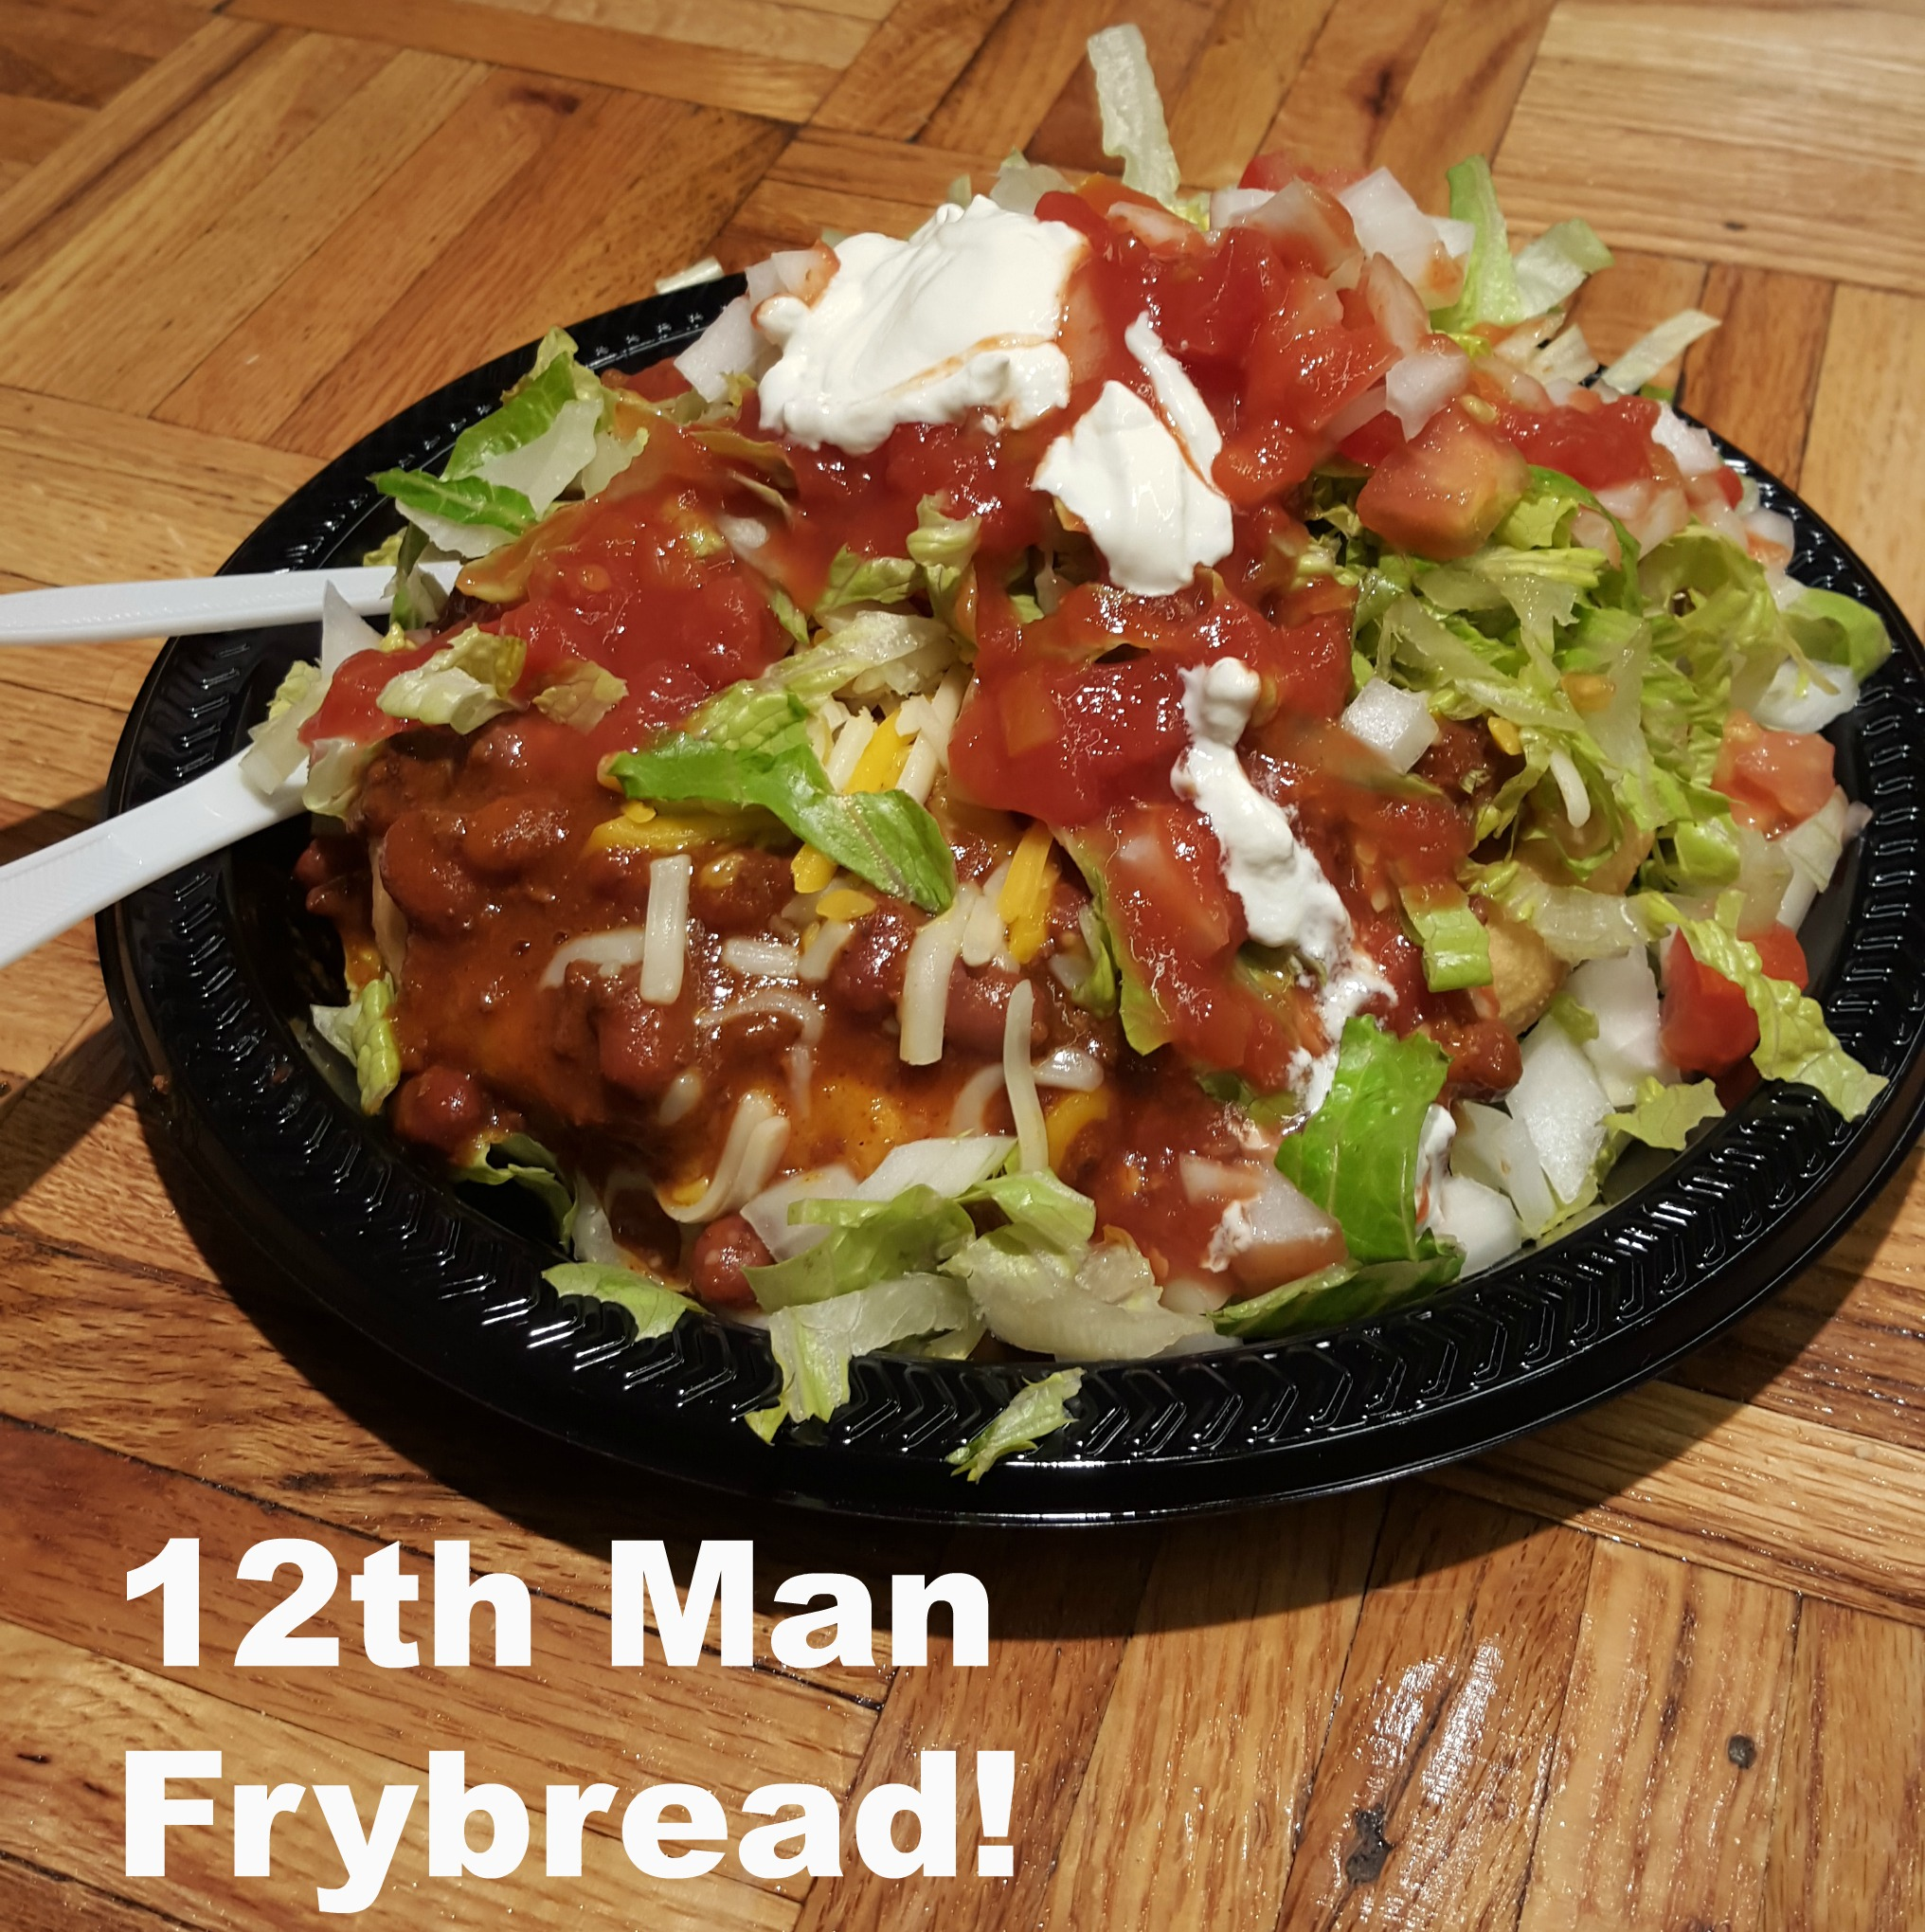 12th man Frybread